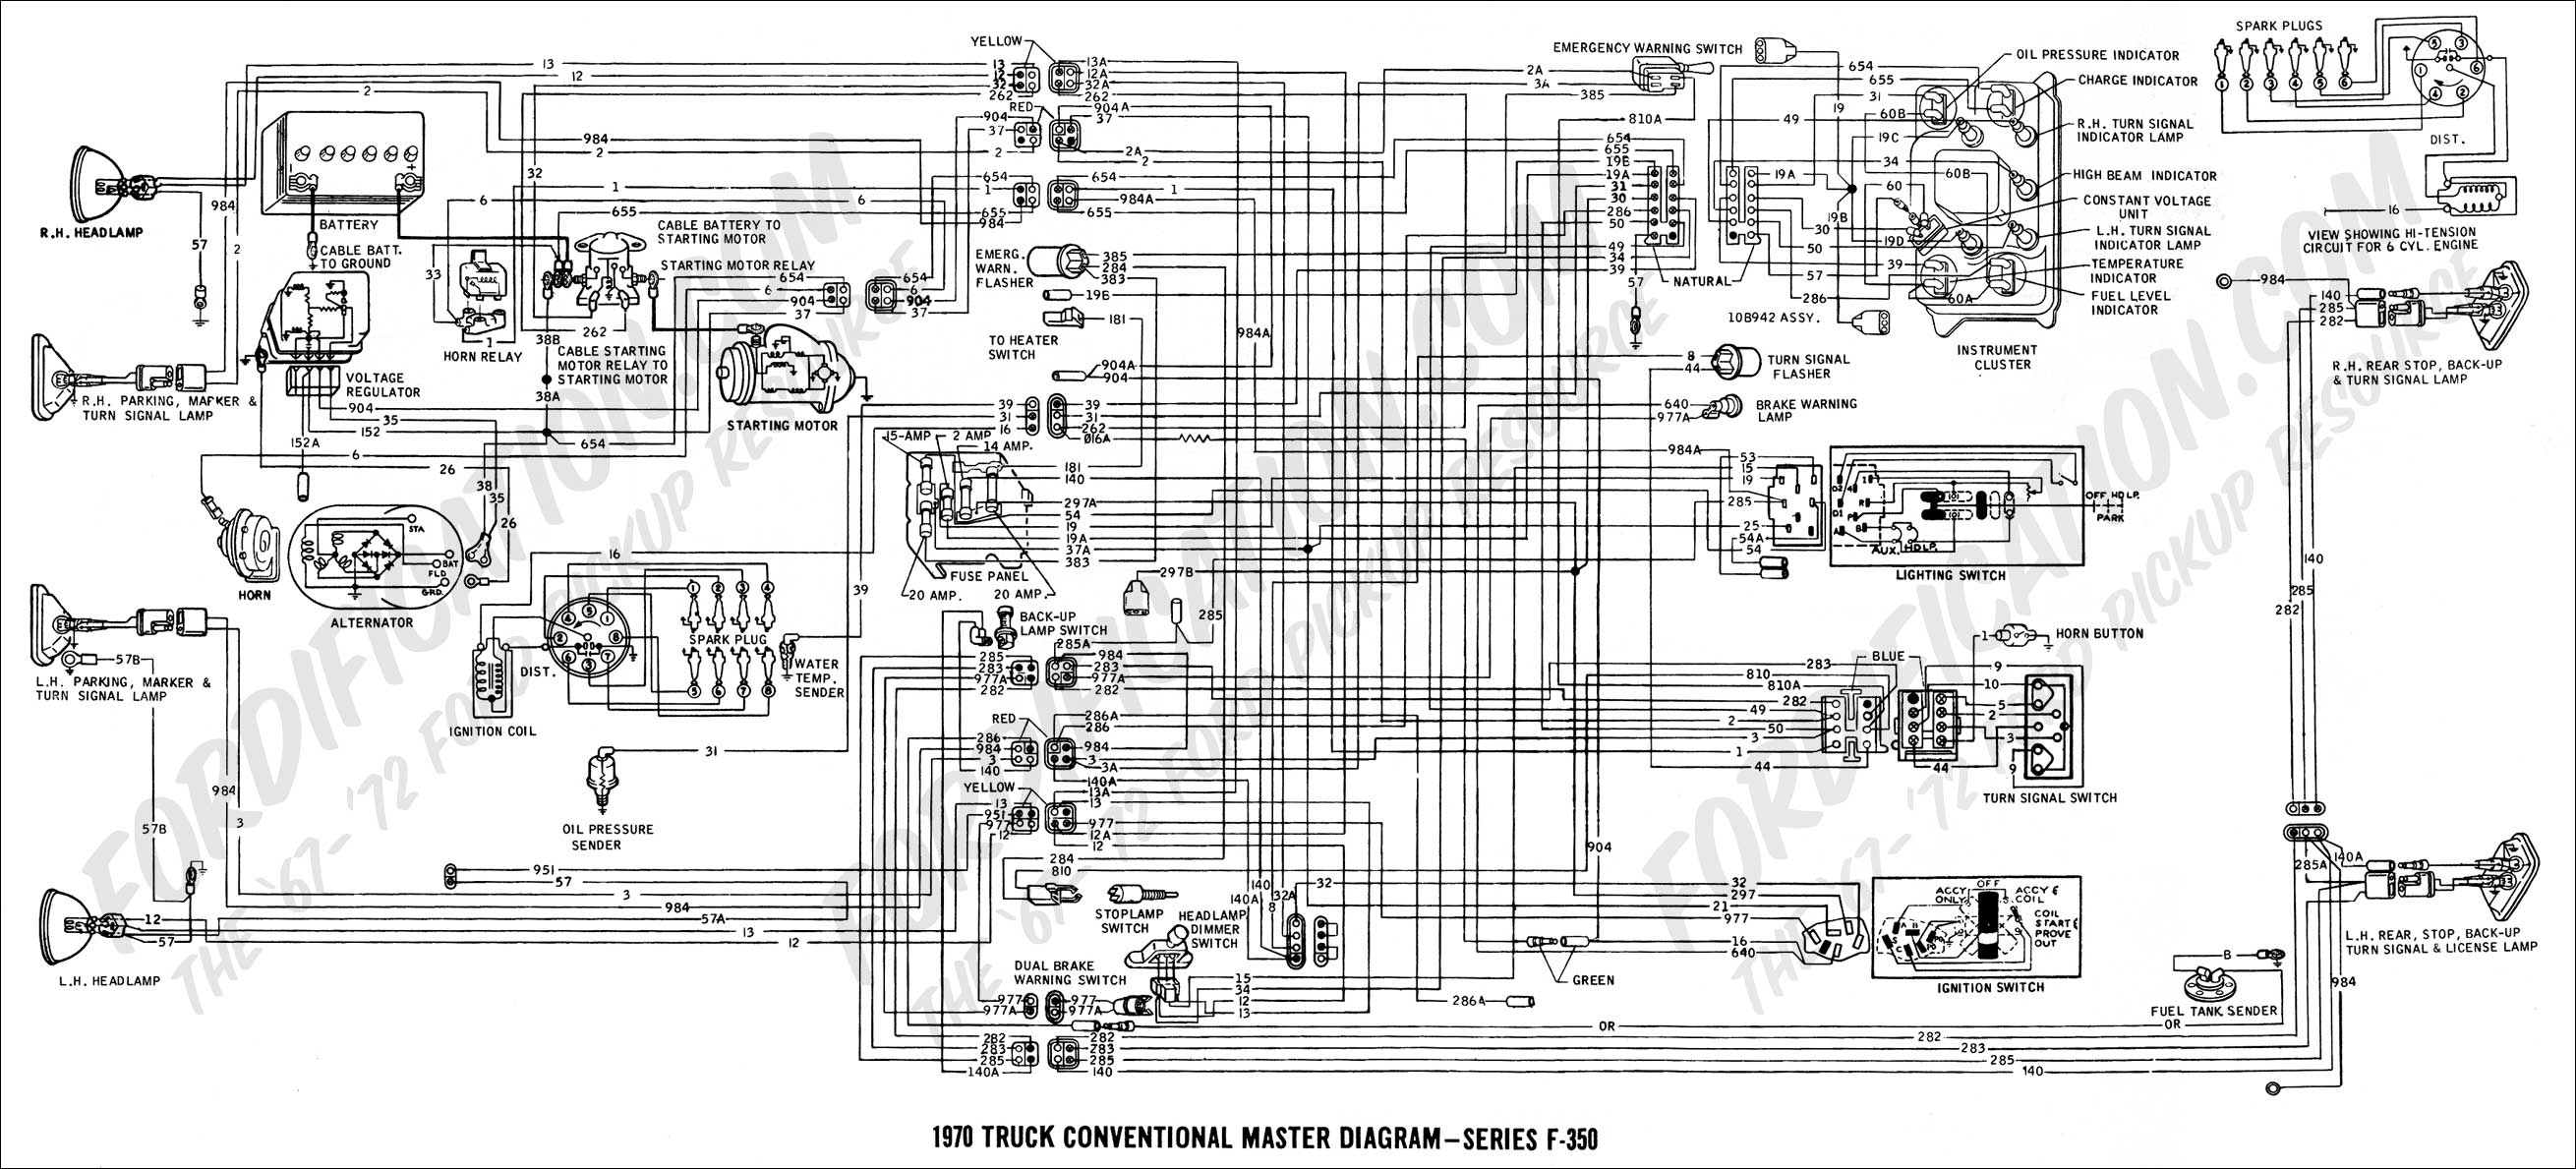 wiring diagram 70F350_master ford truck technical drawings and schematics section h wiring wiring diagrams for 2017 ford trucks at webbmarketing.co